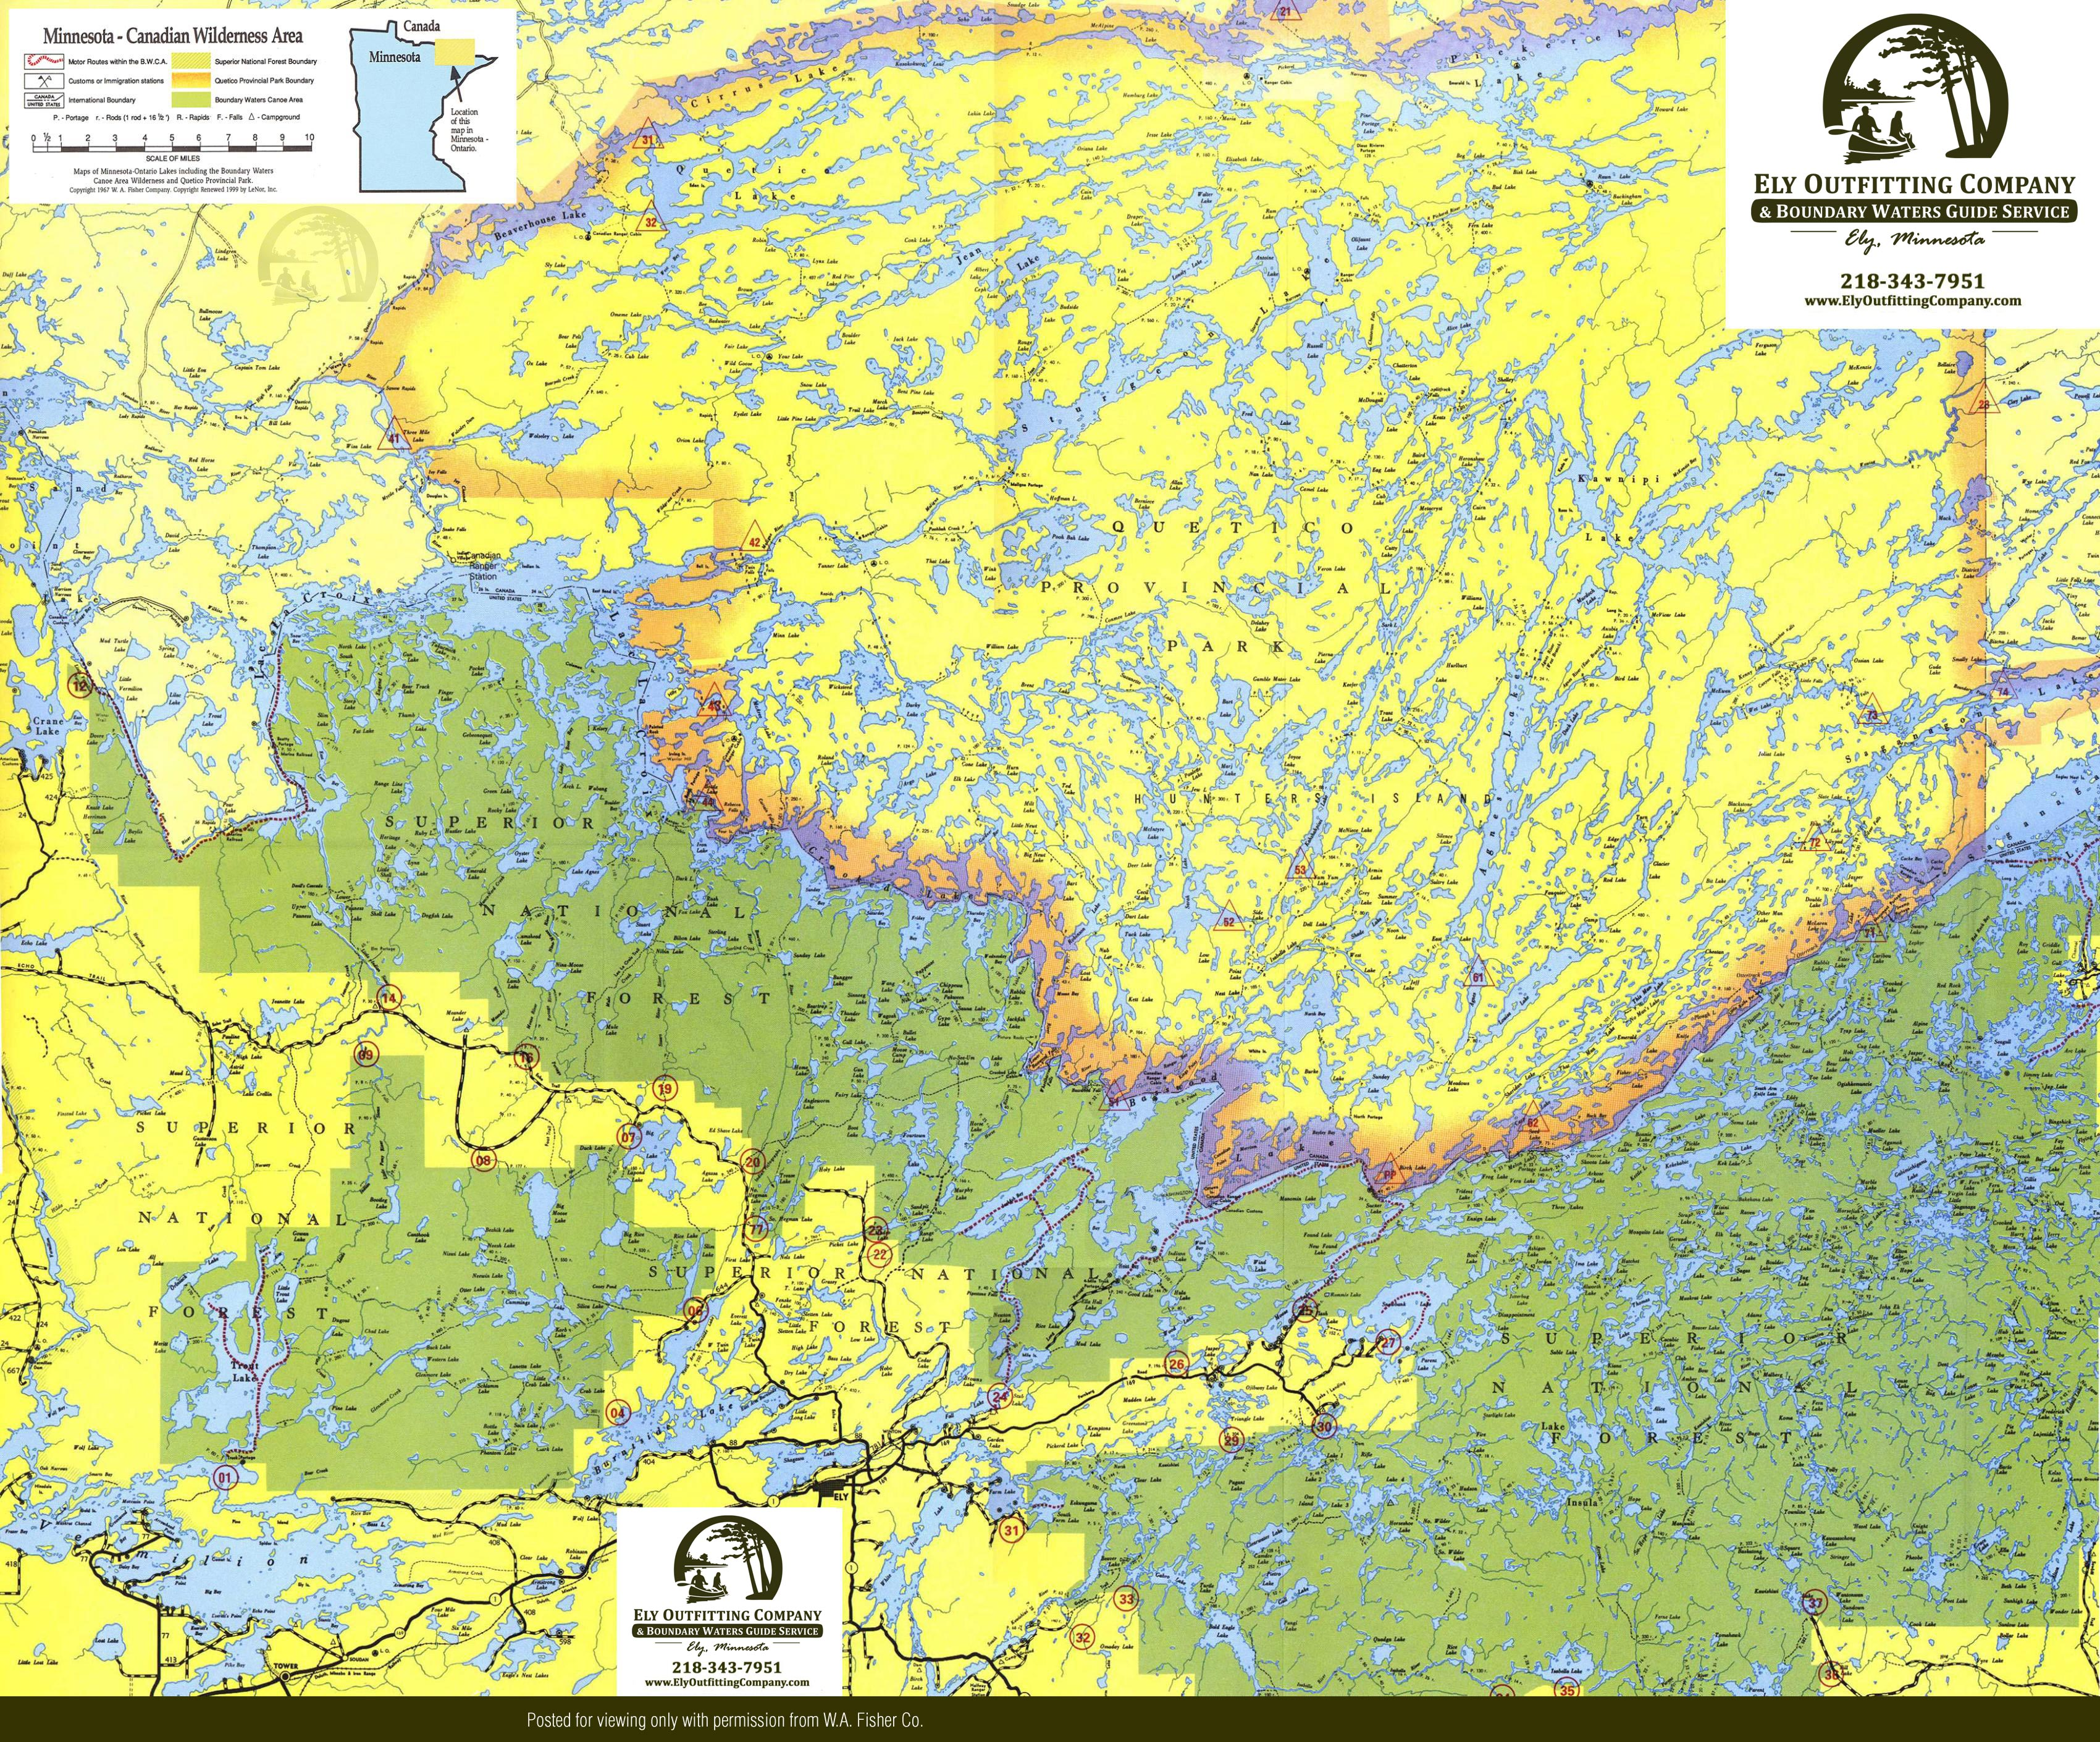 Boundary Waters Canoe Area Map BWCA Route Planning Map - Mn lake maps free